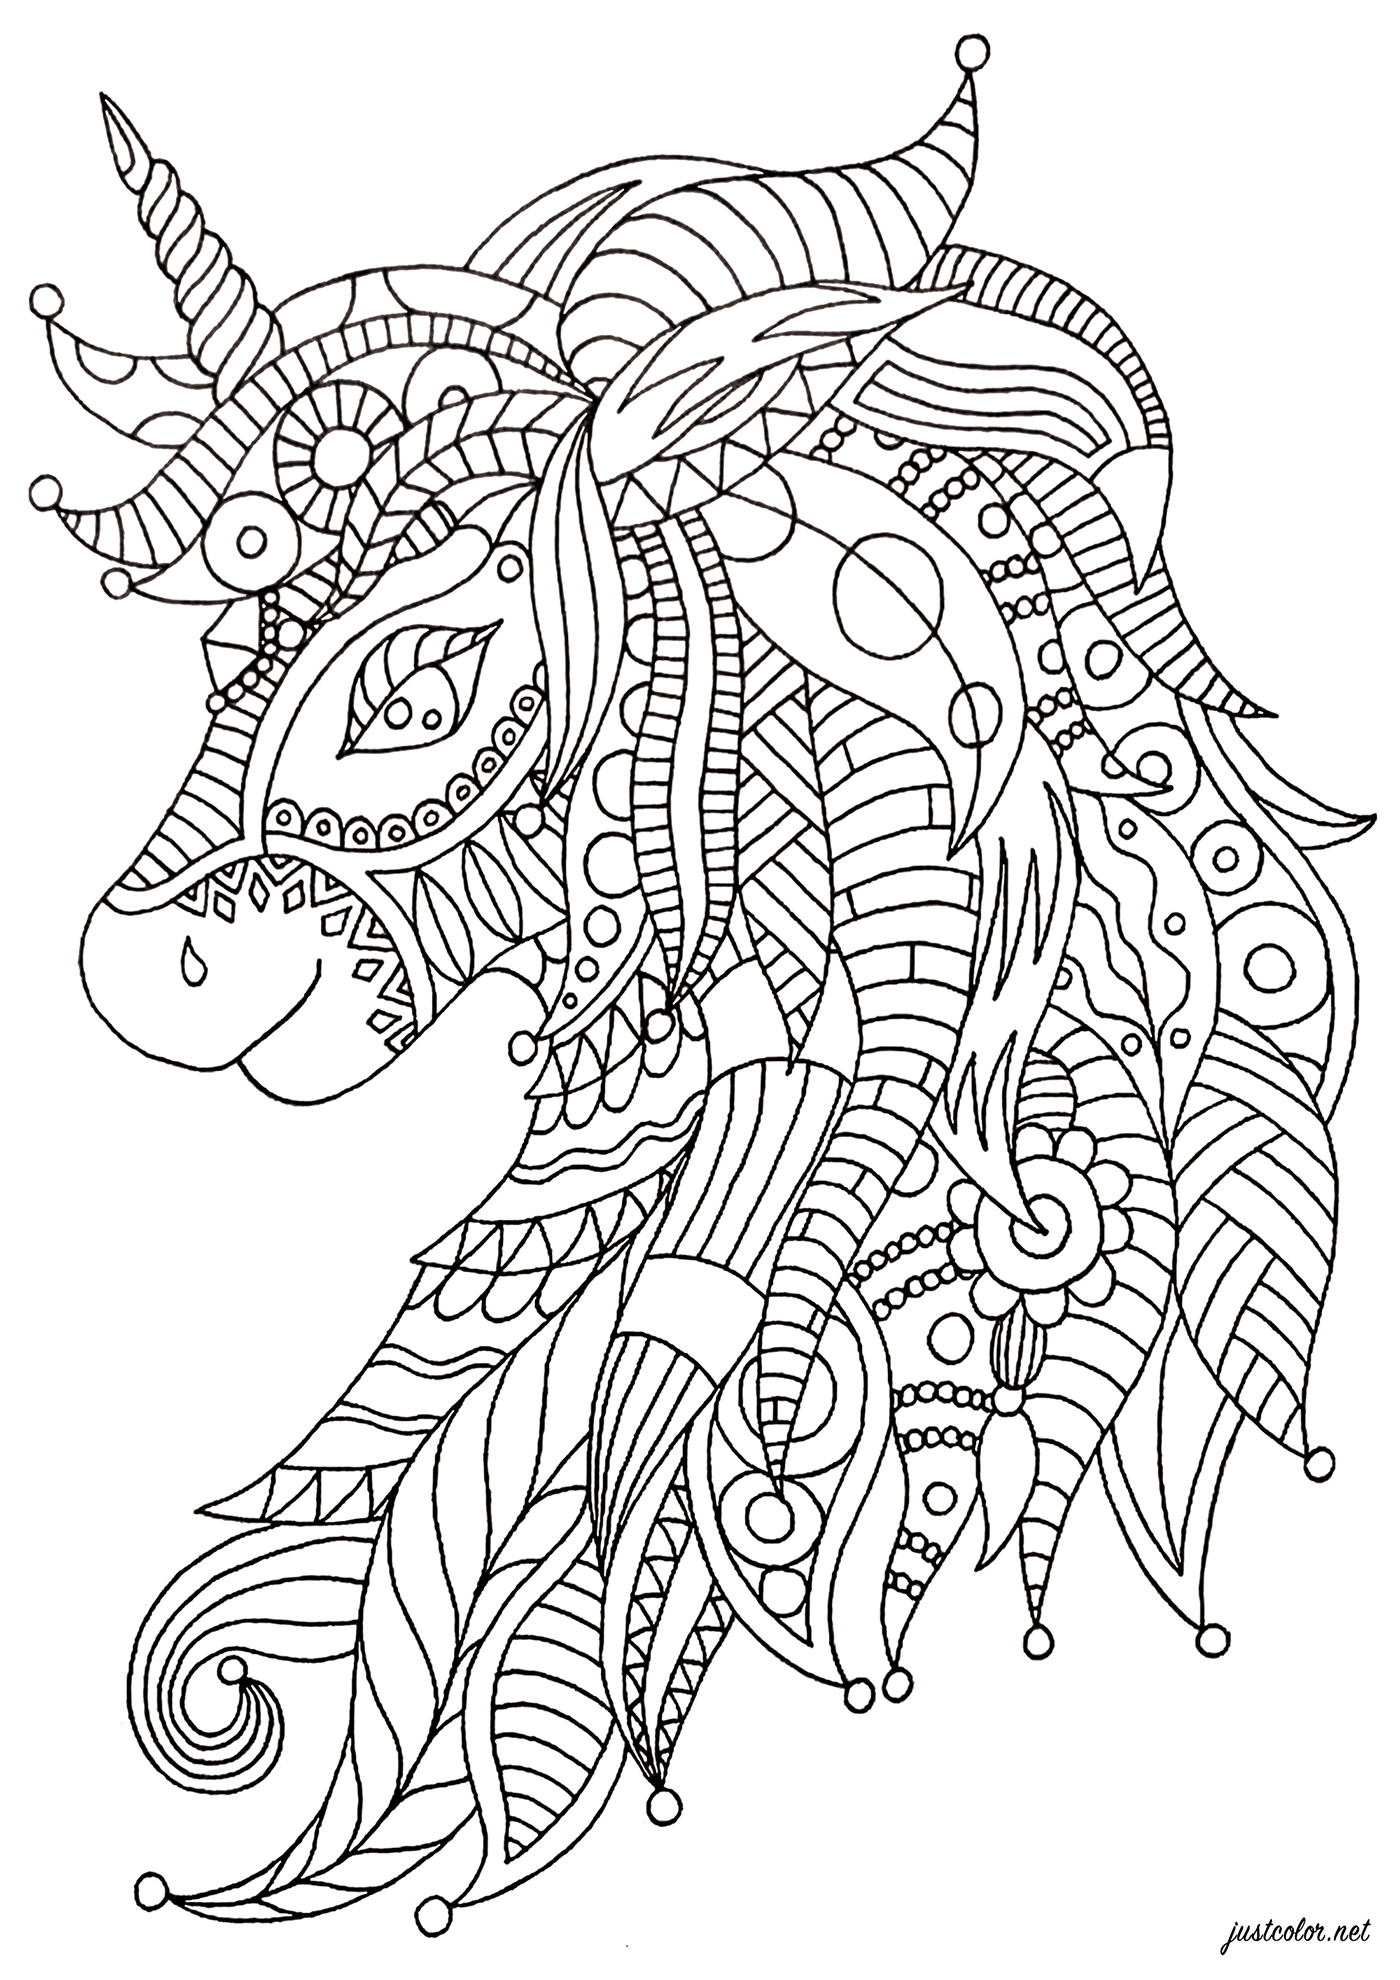 A majestic unicorn with Zentangle patterns